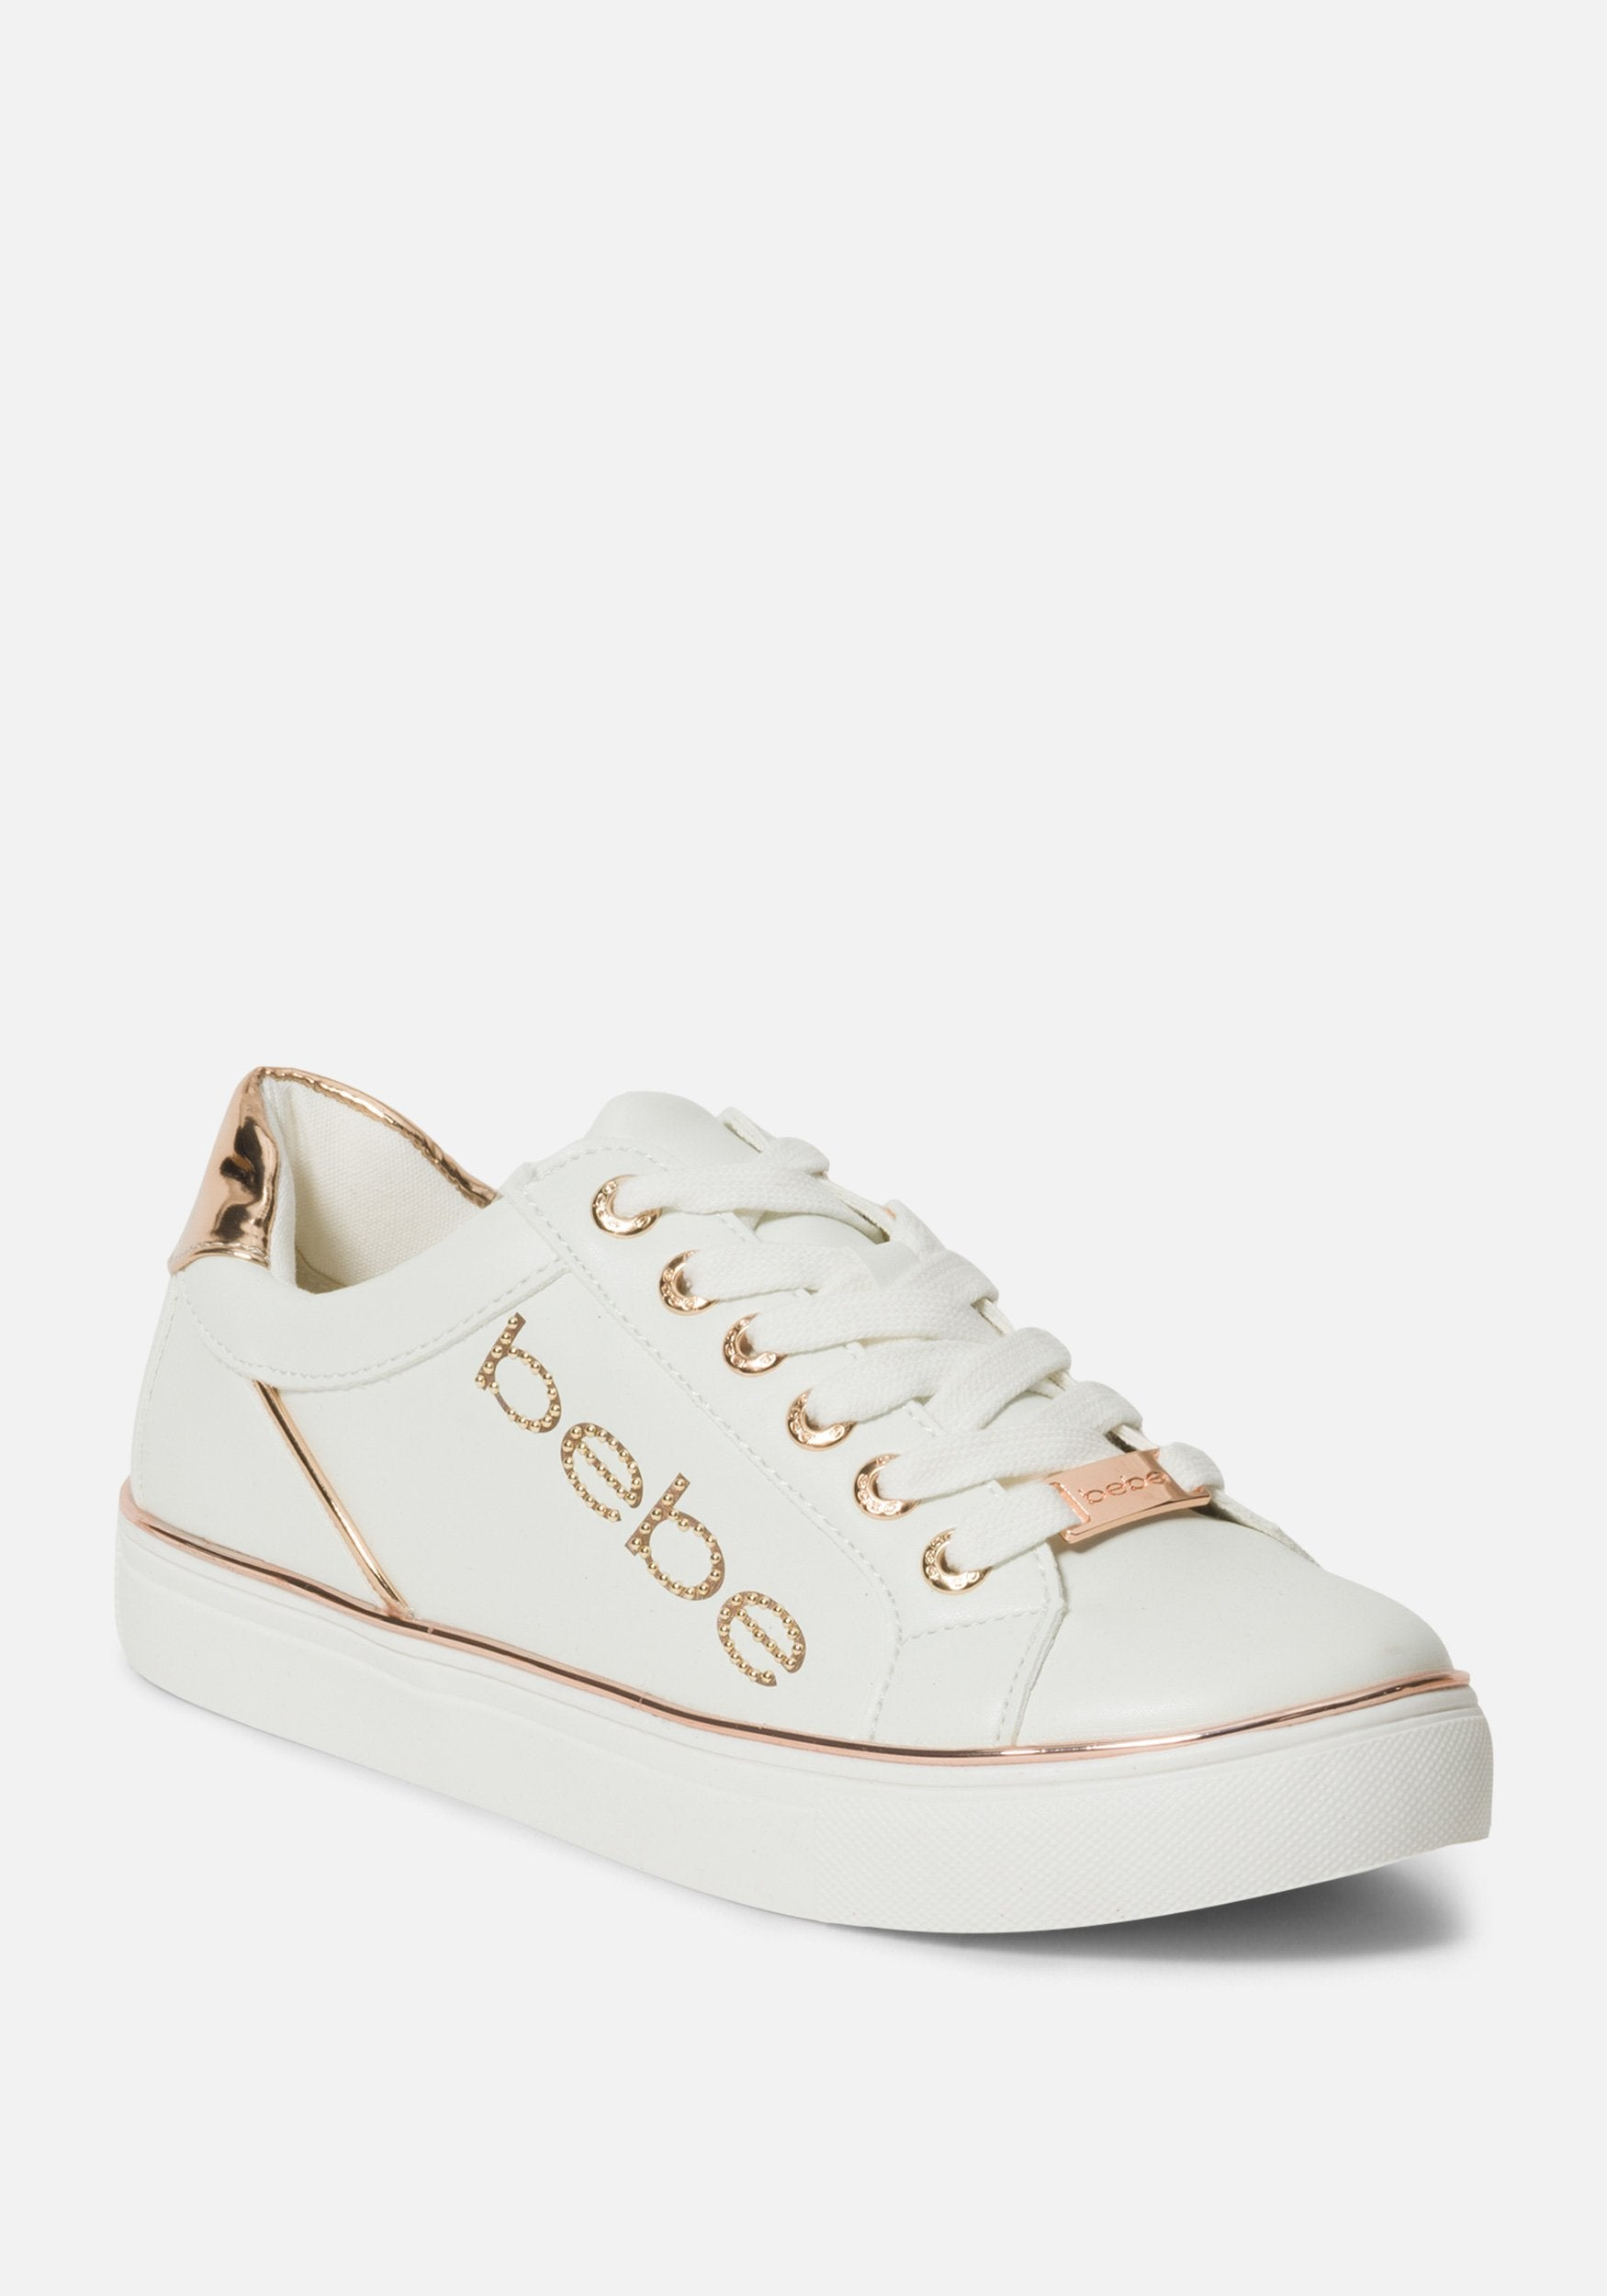 Women's Celise Bebe Logo Sneakers, Size 6 in White/Rose Gold Synthetic